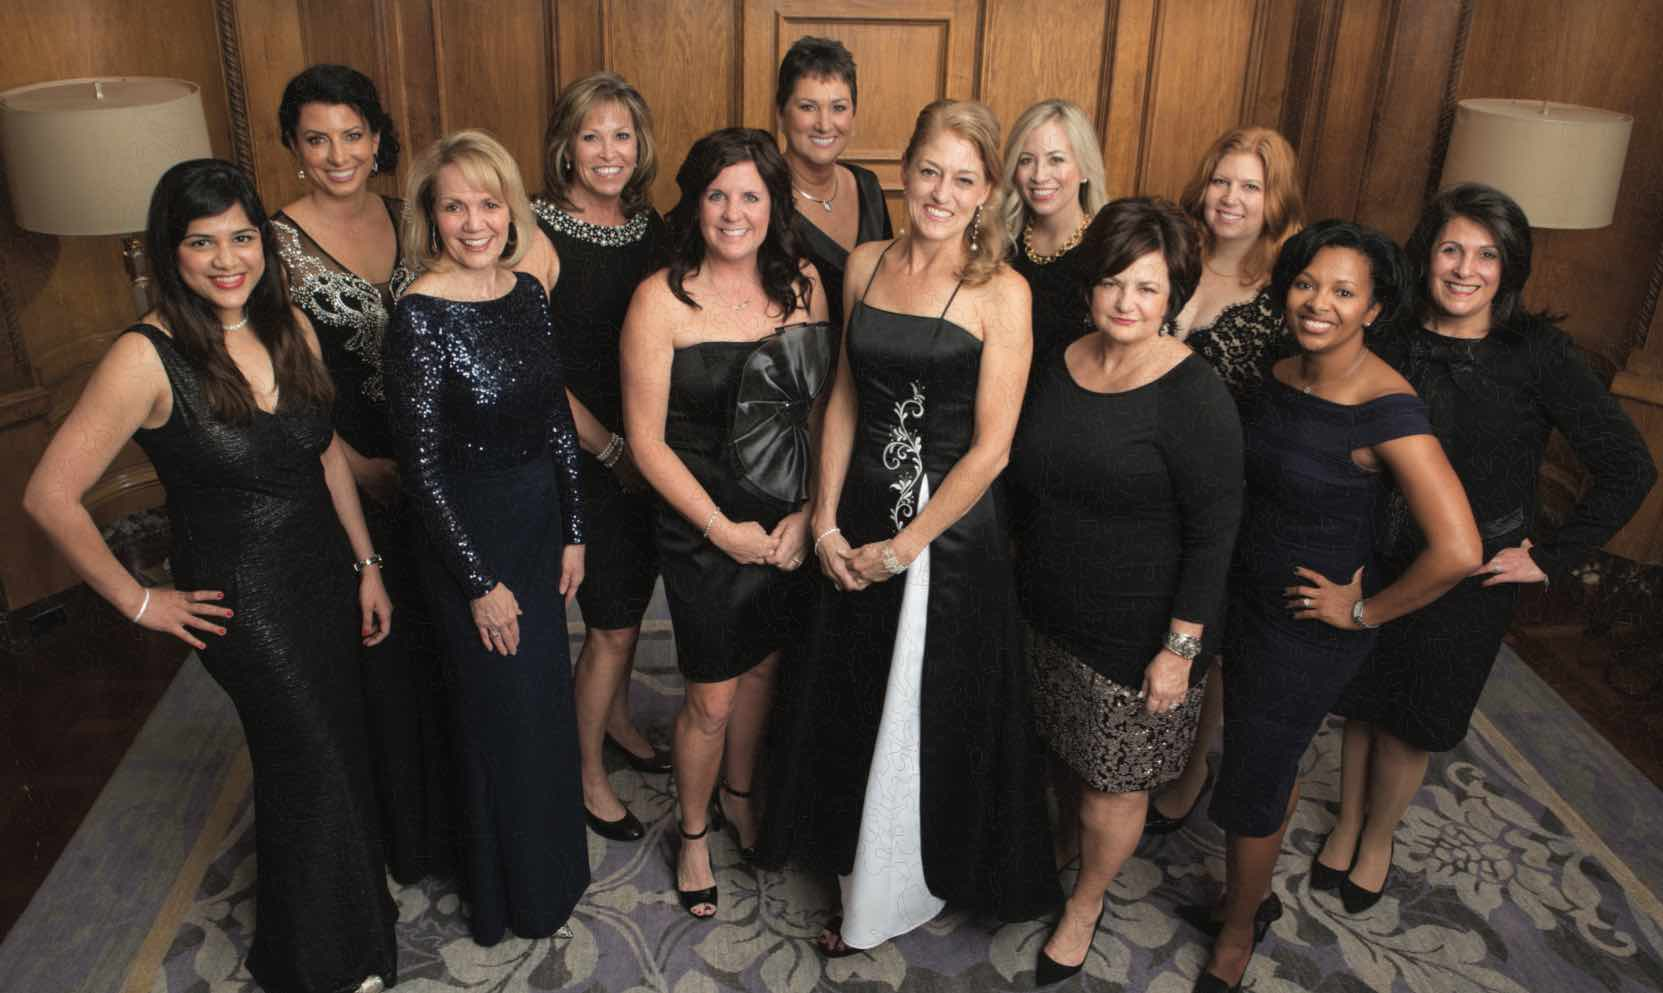 The 2016 Women Leaders in Consulting: A Celebration of Excellence